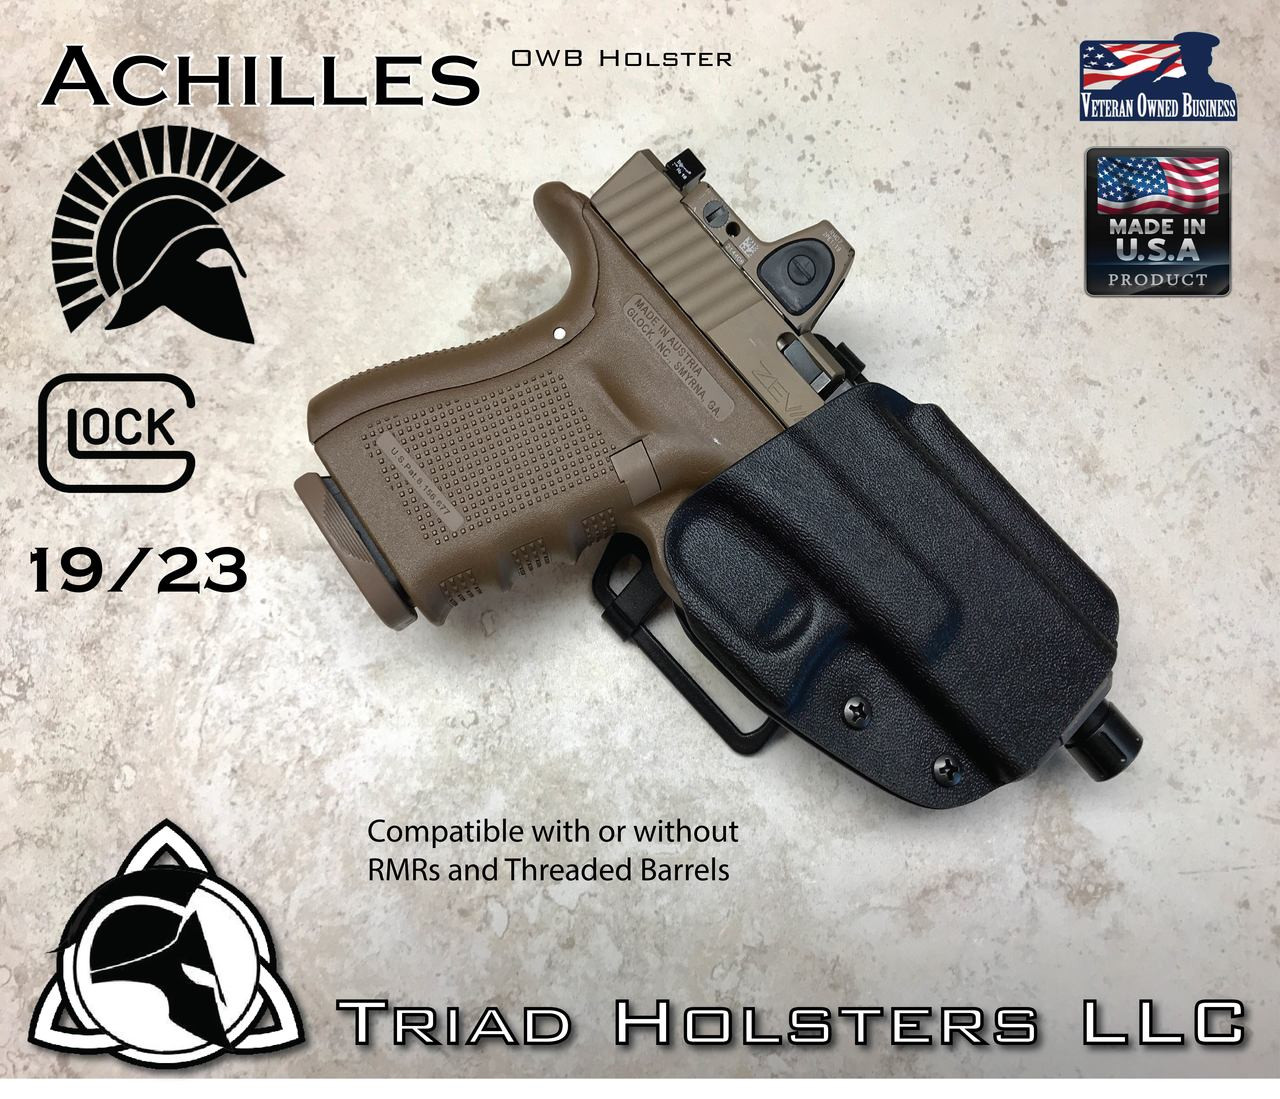 Kydex Holster Glock 19/23 Achilles OWB Outside the Waistband